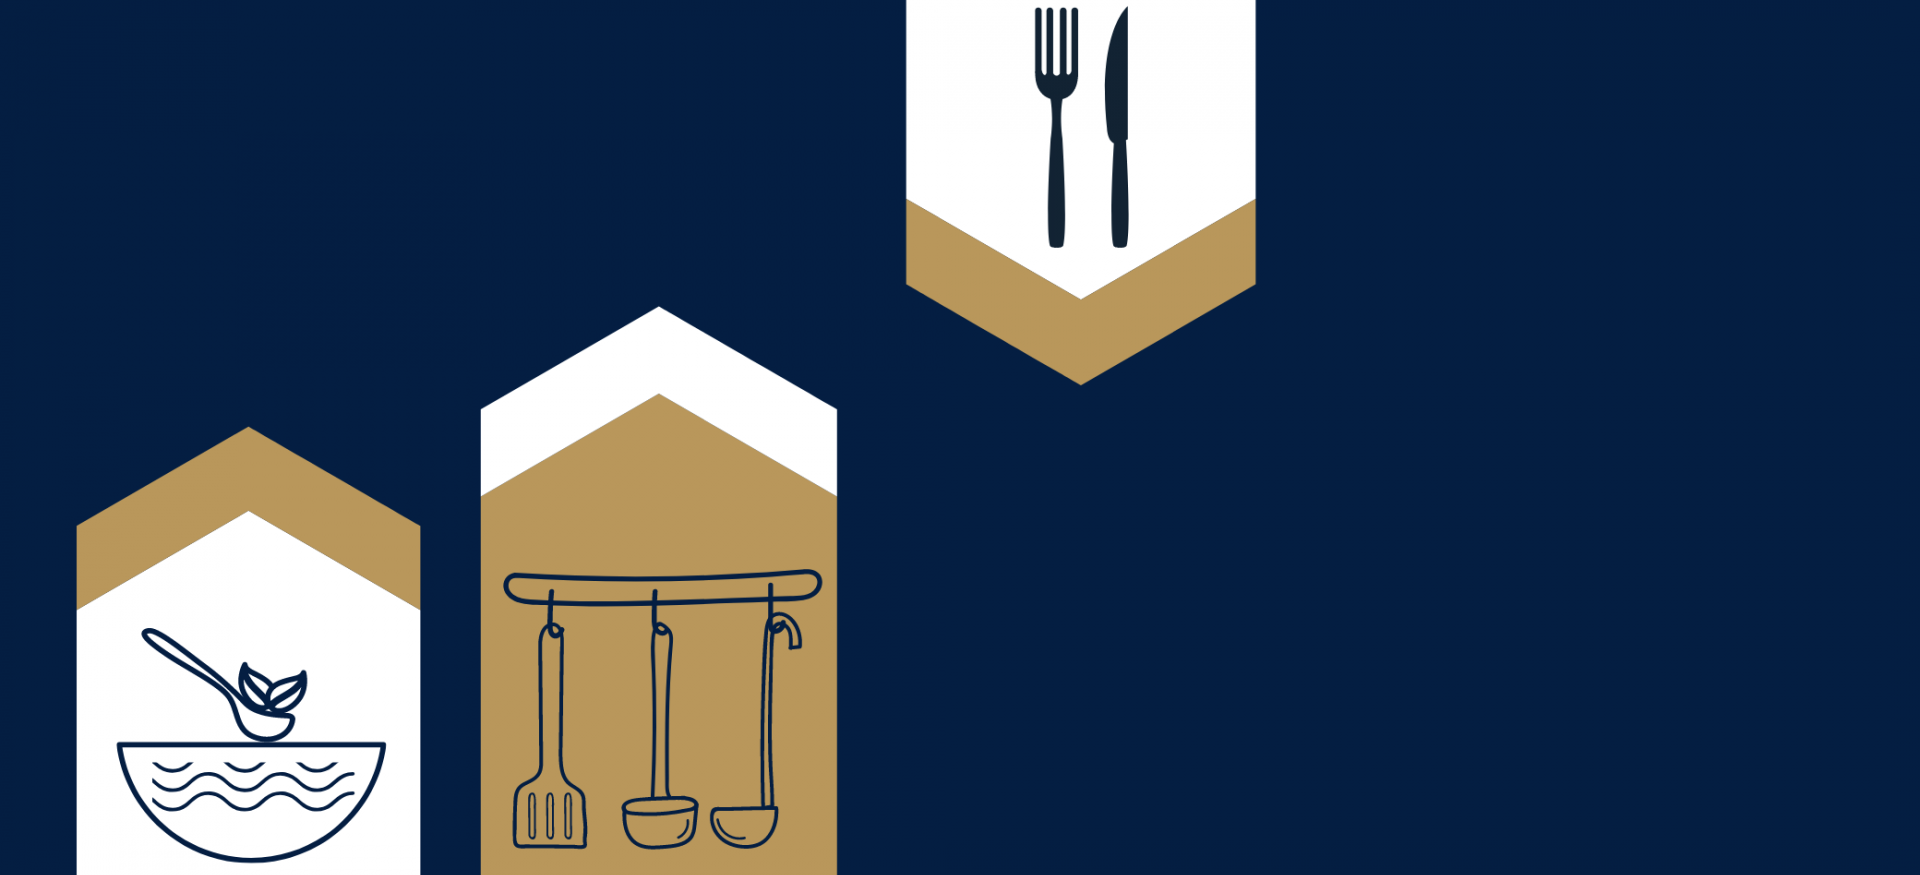 A graphic in dark blue with outlines of a cooking pot and a chopping board with knife and vegetables.